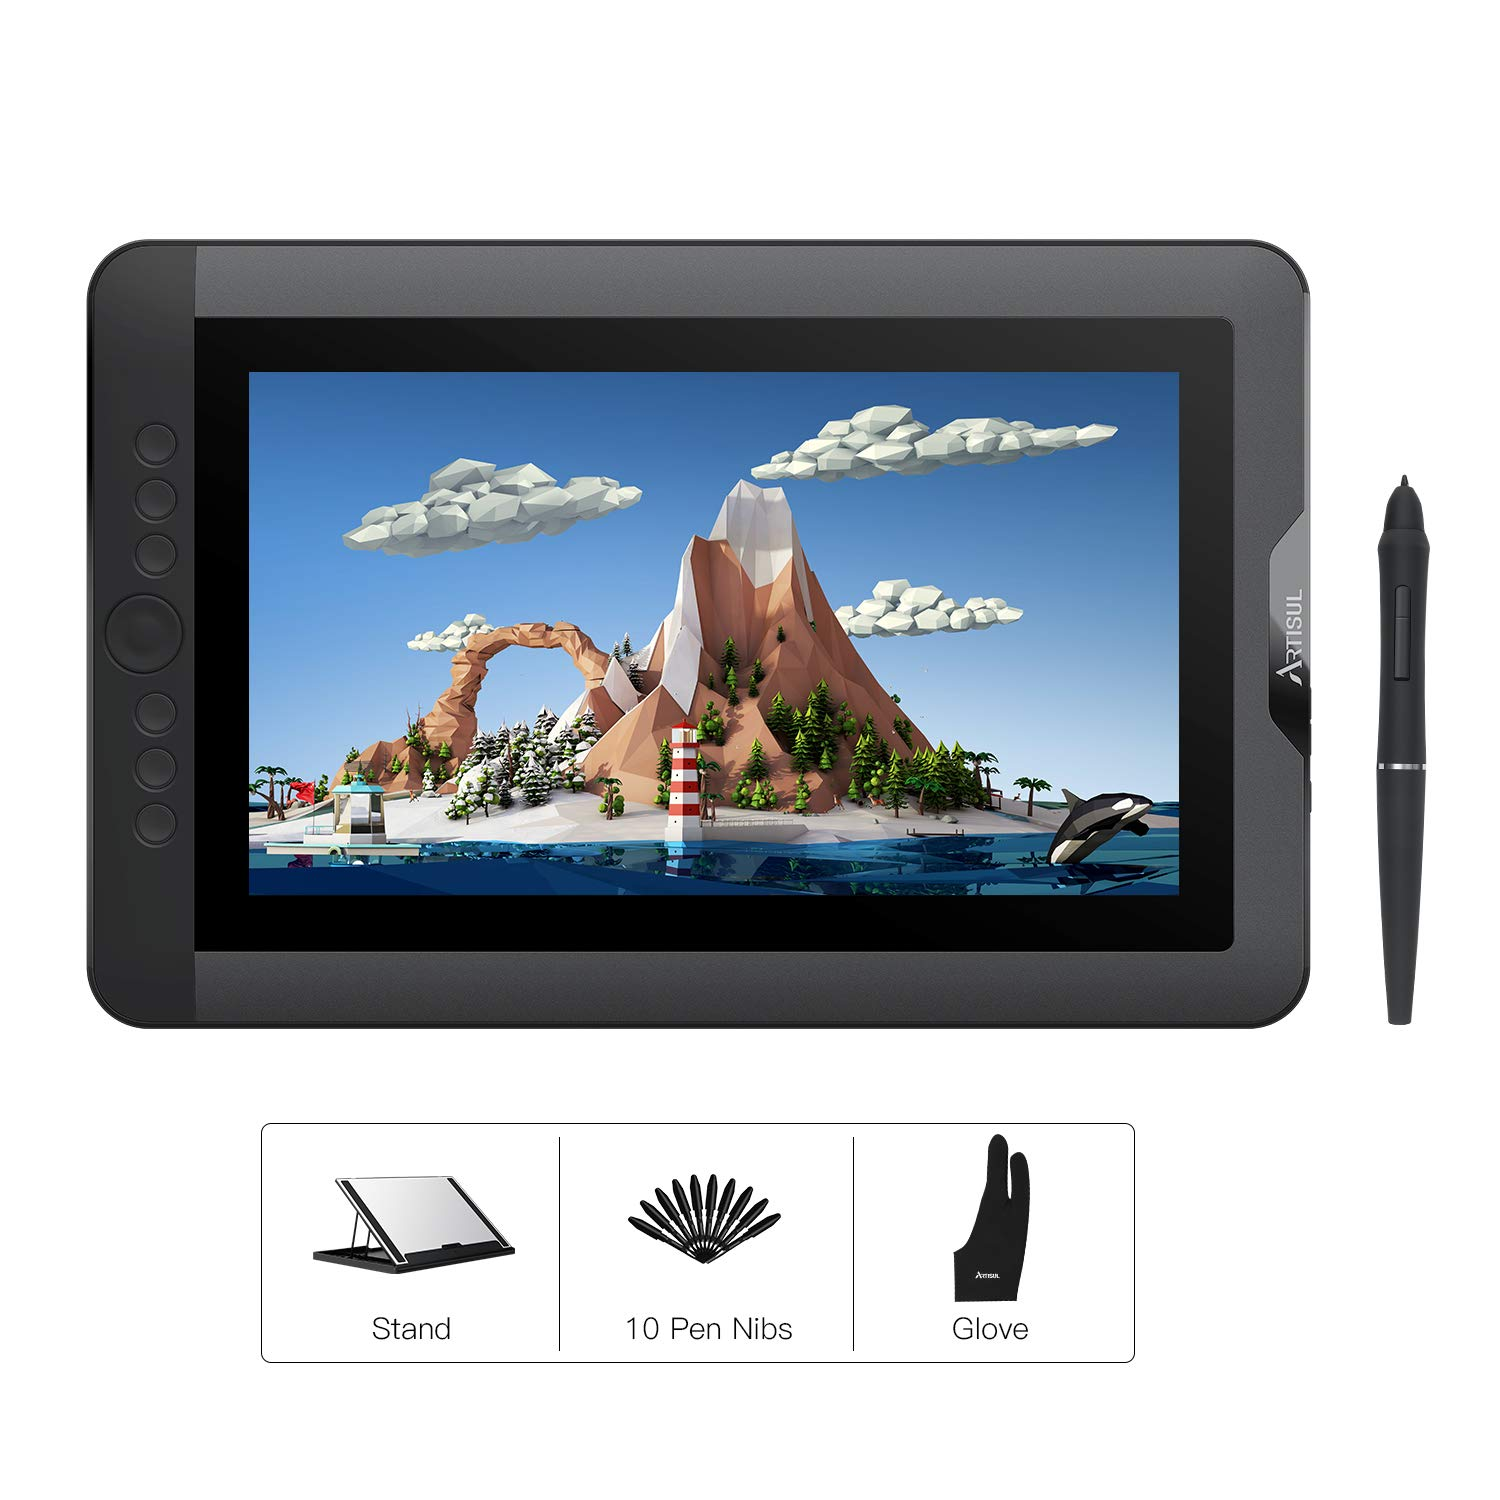 Artisul D13S 13.3 Inch Graphics Drawing Monitor Pen Display with 8192 Levels Battery-Free Stylus 1920x1080 FHD Graphics Drawing Tablet with Screen Lightweight for On The Go or Home Office